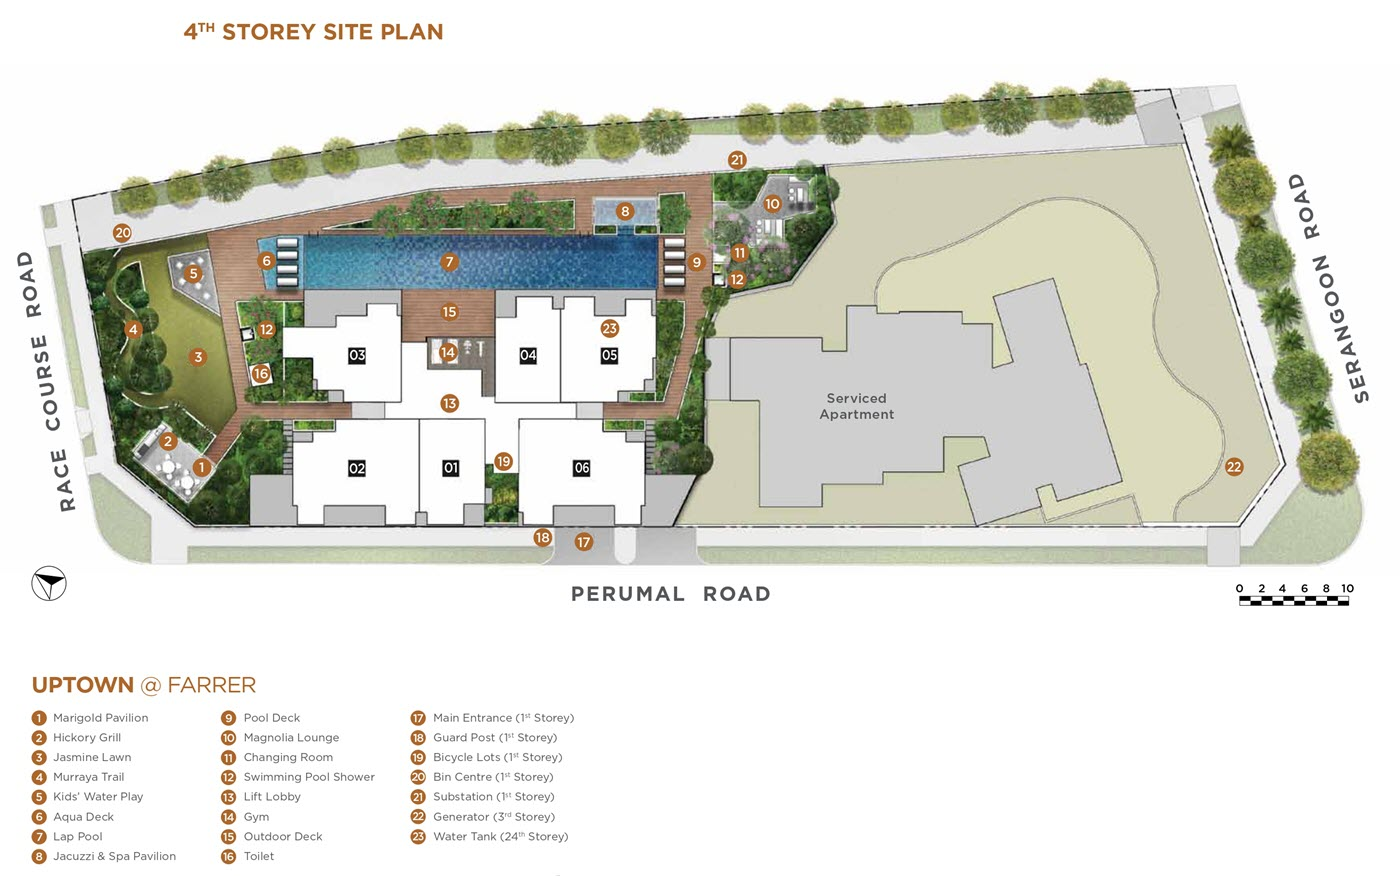 Uptown @ Farrer Condo 4th Storey Site Plan